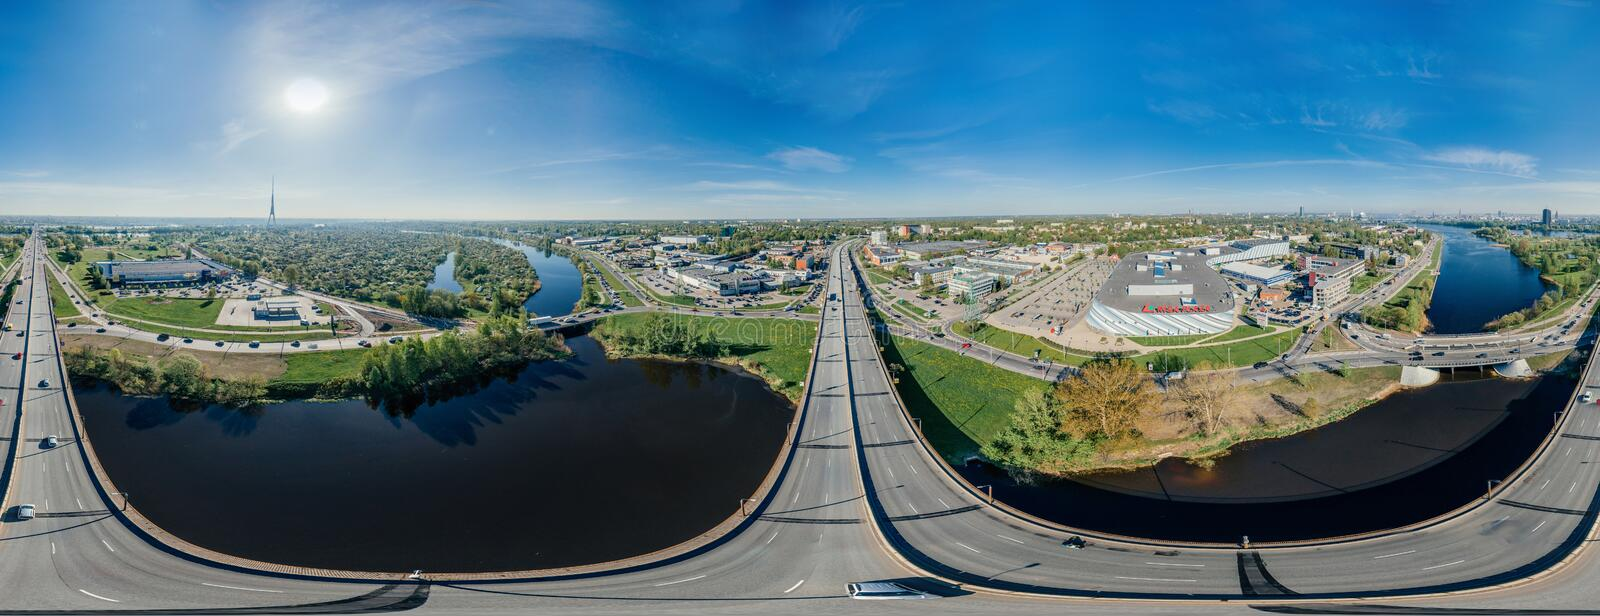 City Riga Bridge road and cars drone sphere 360 vr view royalty free stock photos